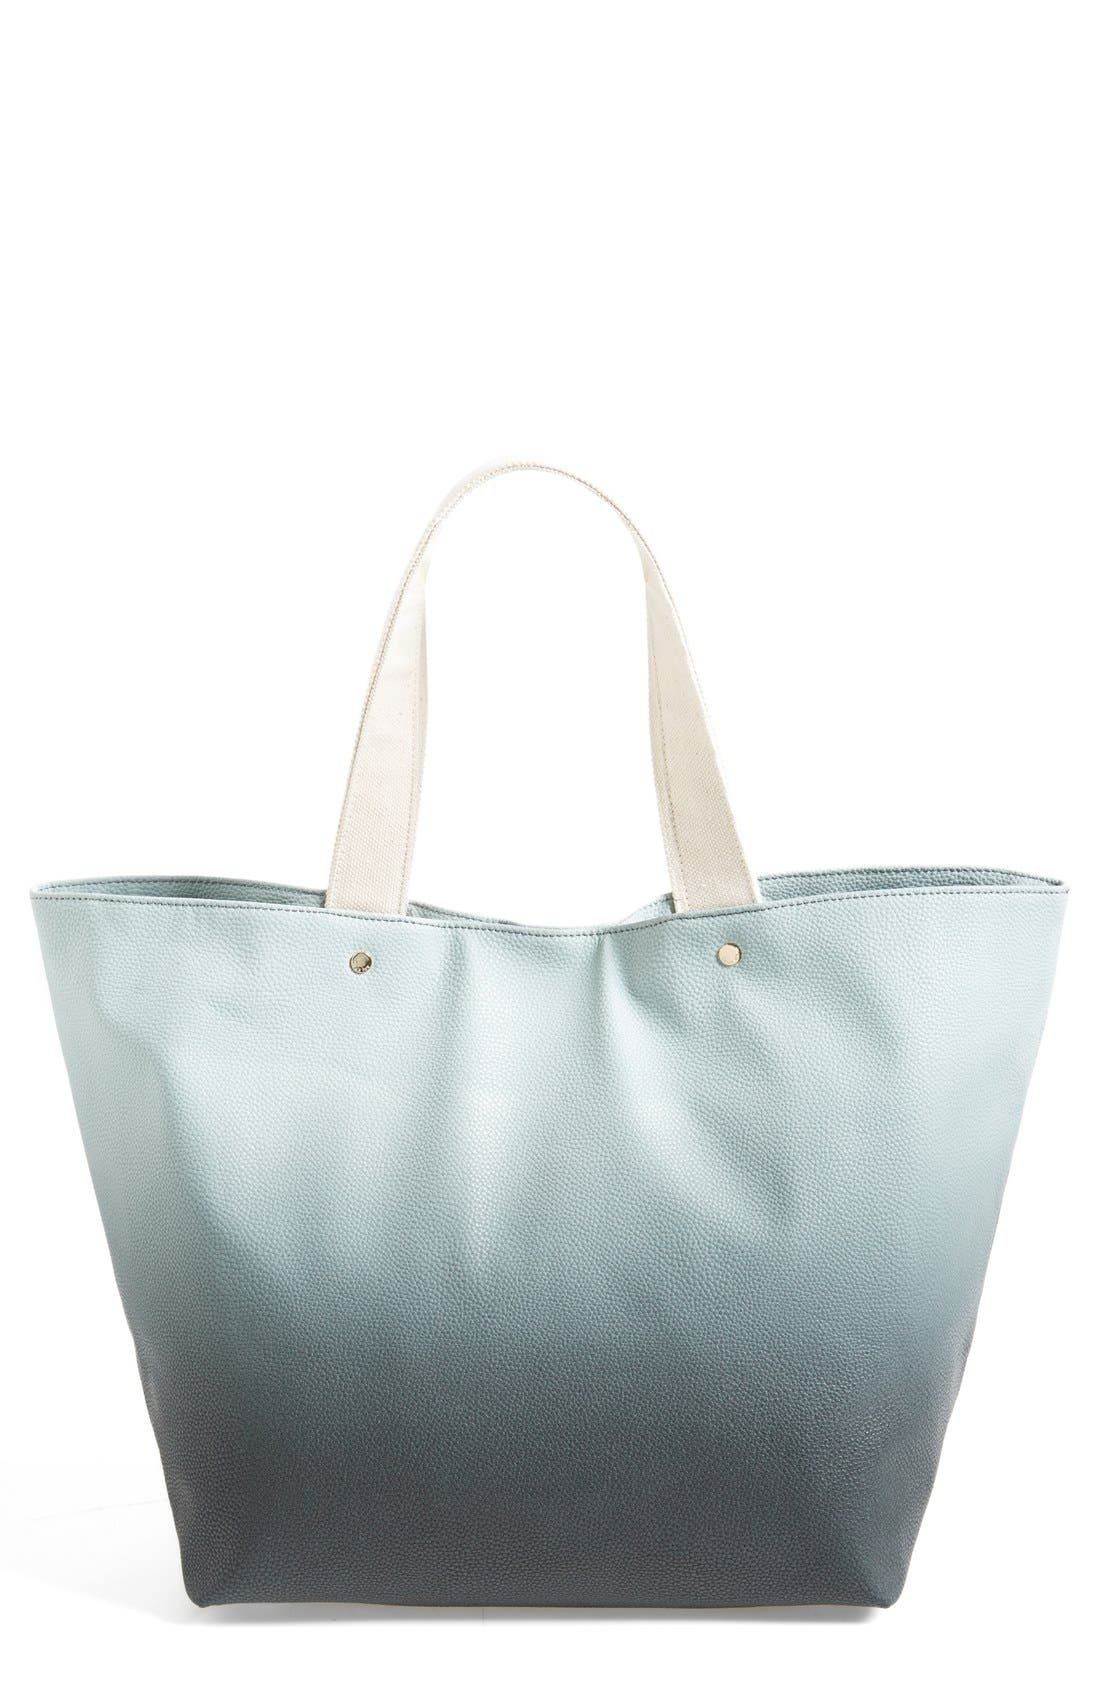 Alternate Image 1 Selected - DL Activ 'Chakra' Ombré Tote